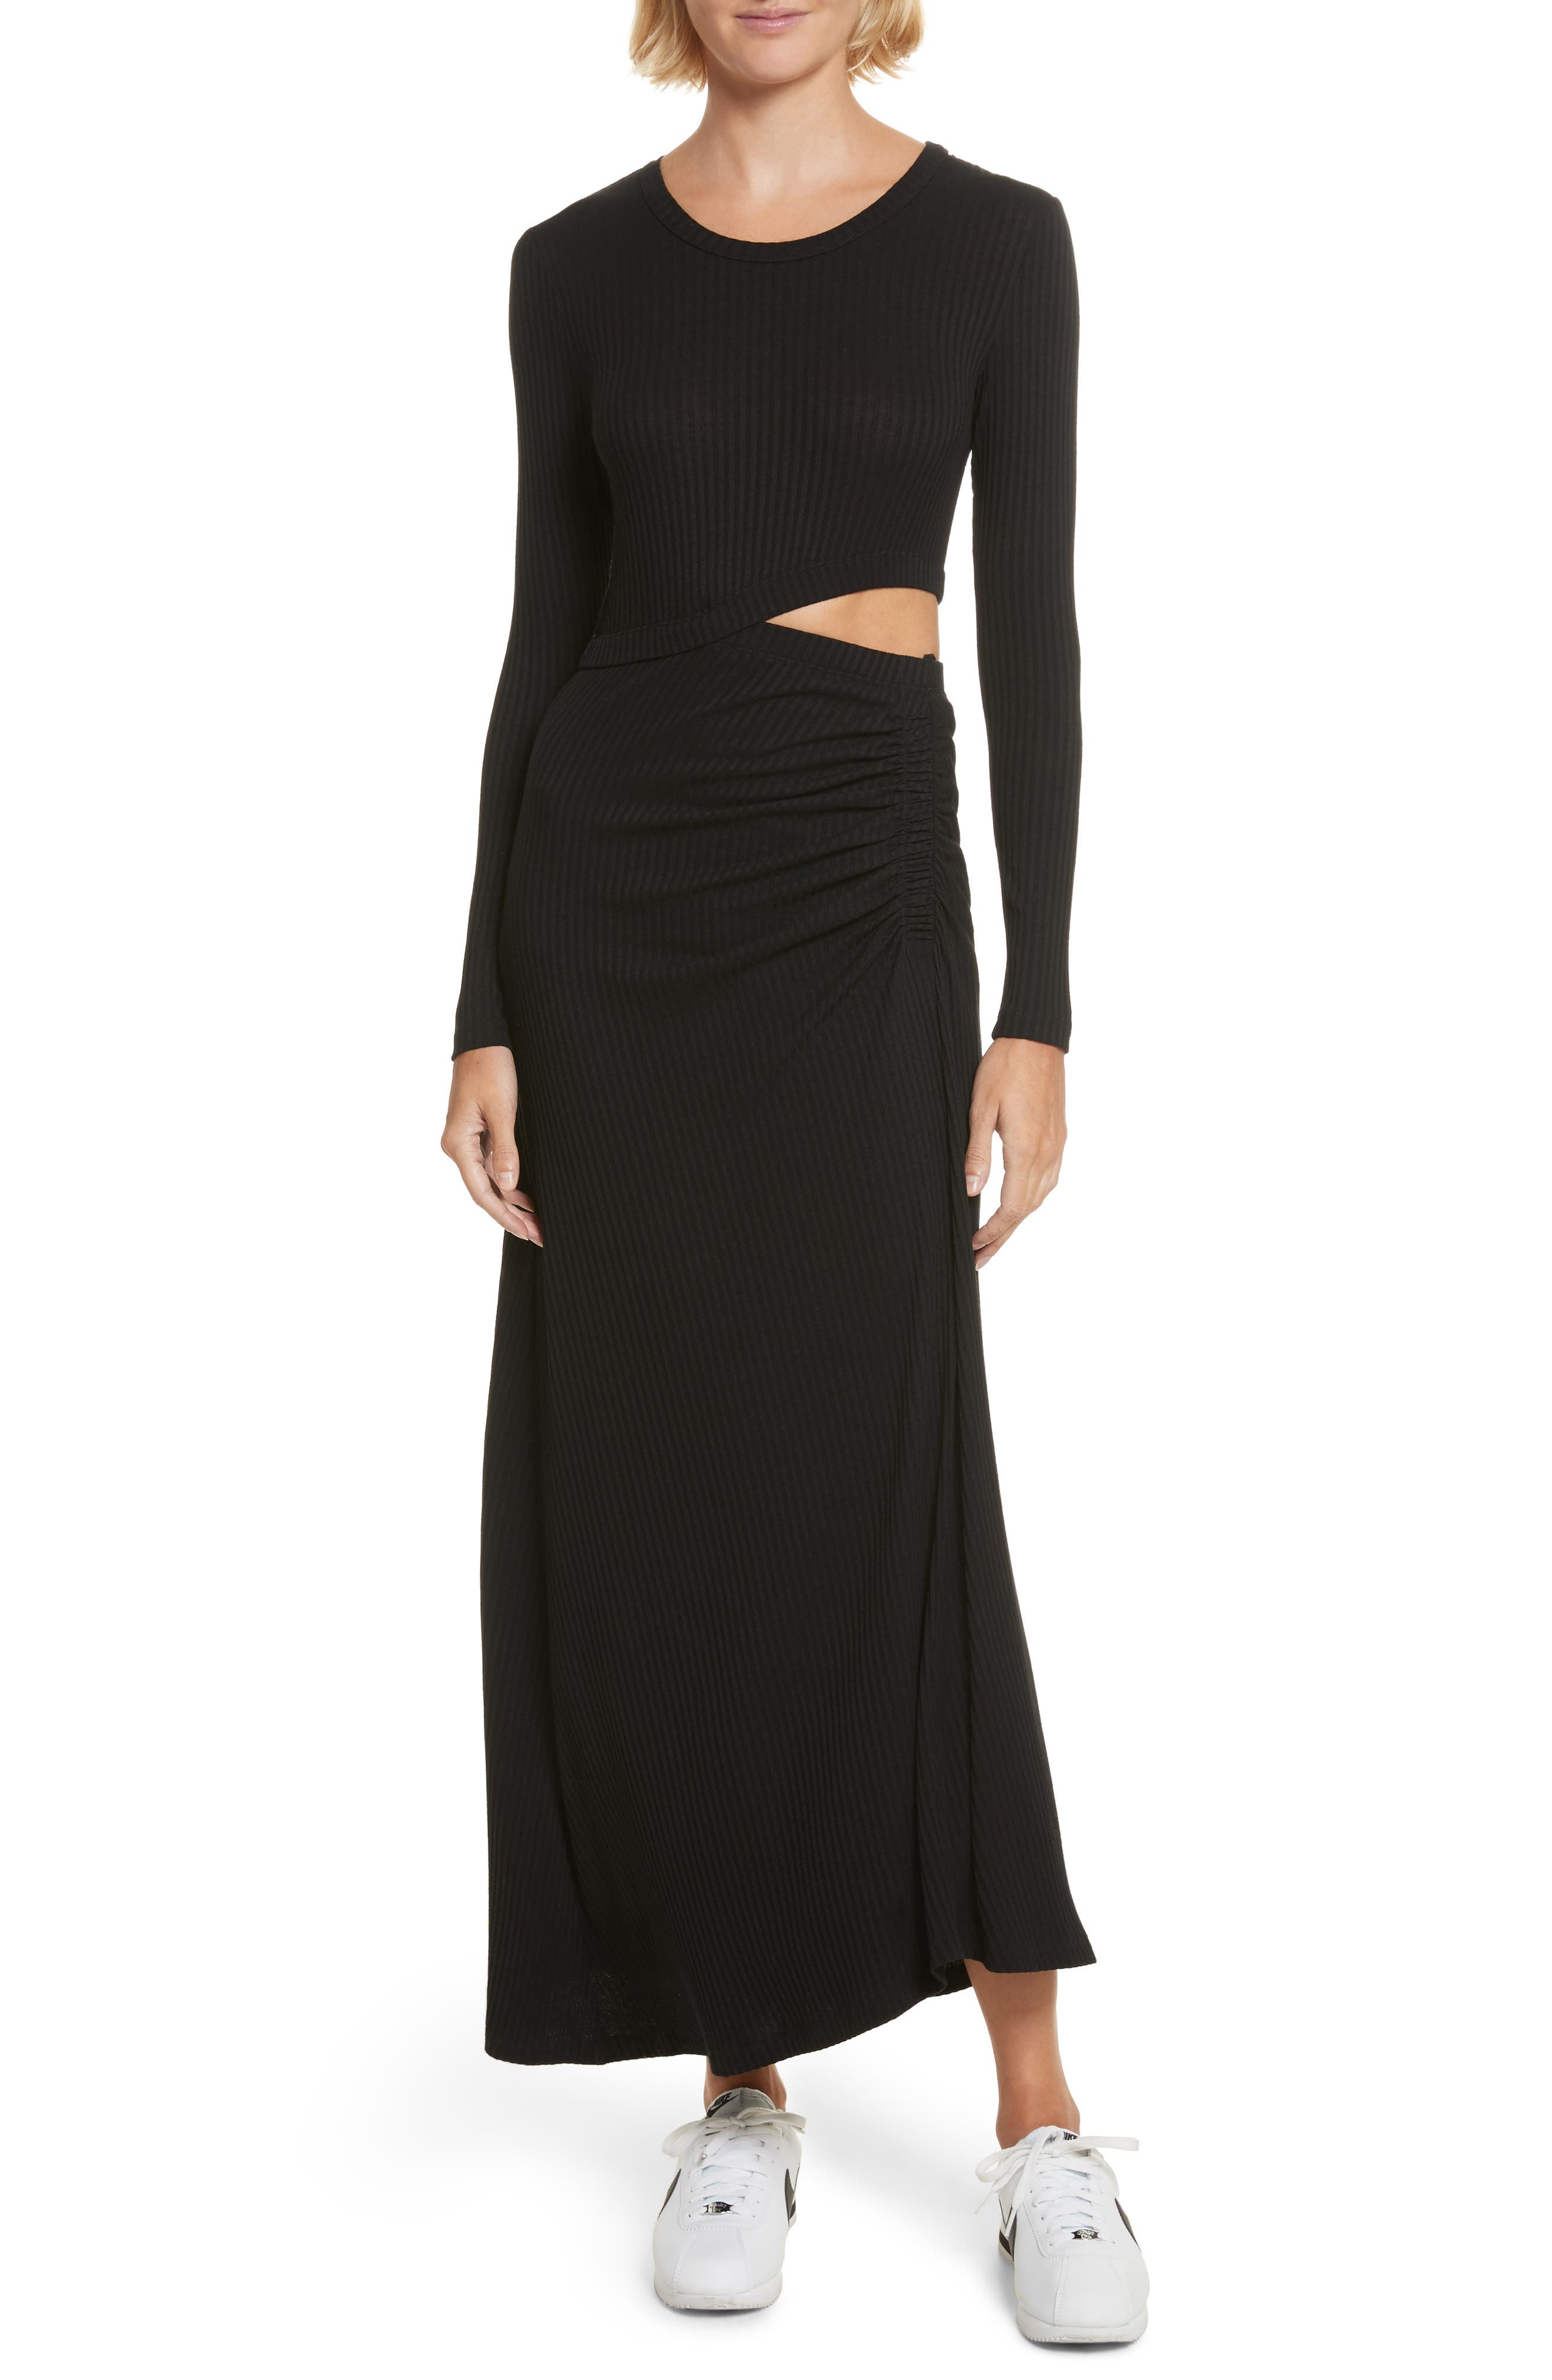 Rooney Cutout Dress,                         Main,                         color,